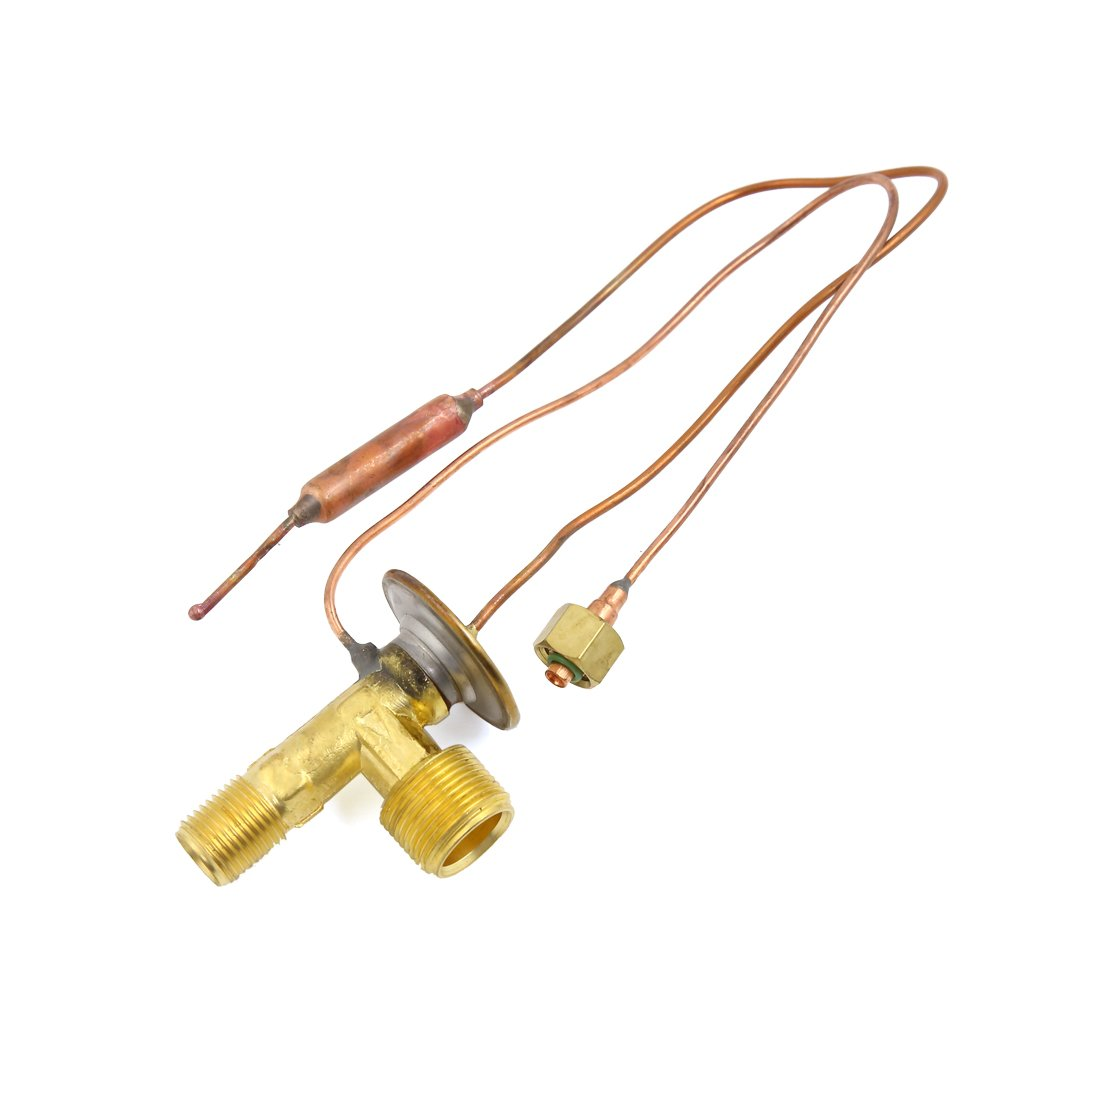 uxcell Universal A/C System Heating Cooling Dual Seal Rings Expansion Valve for Car